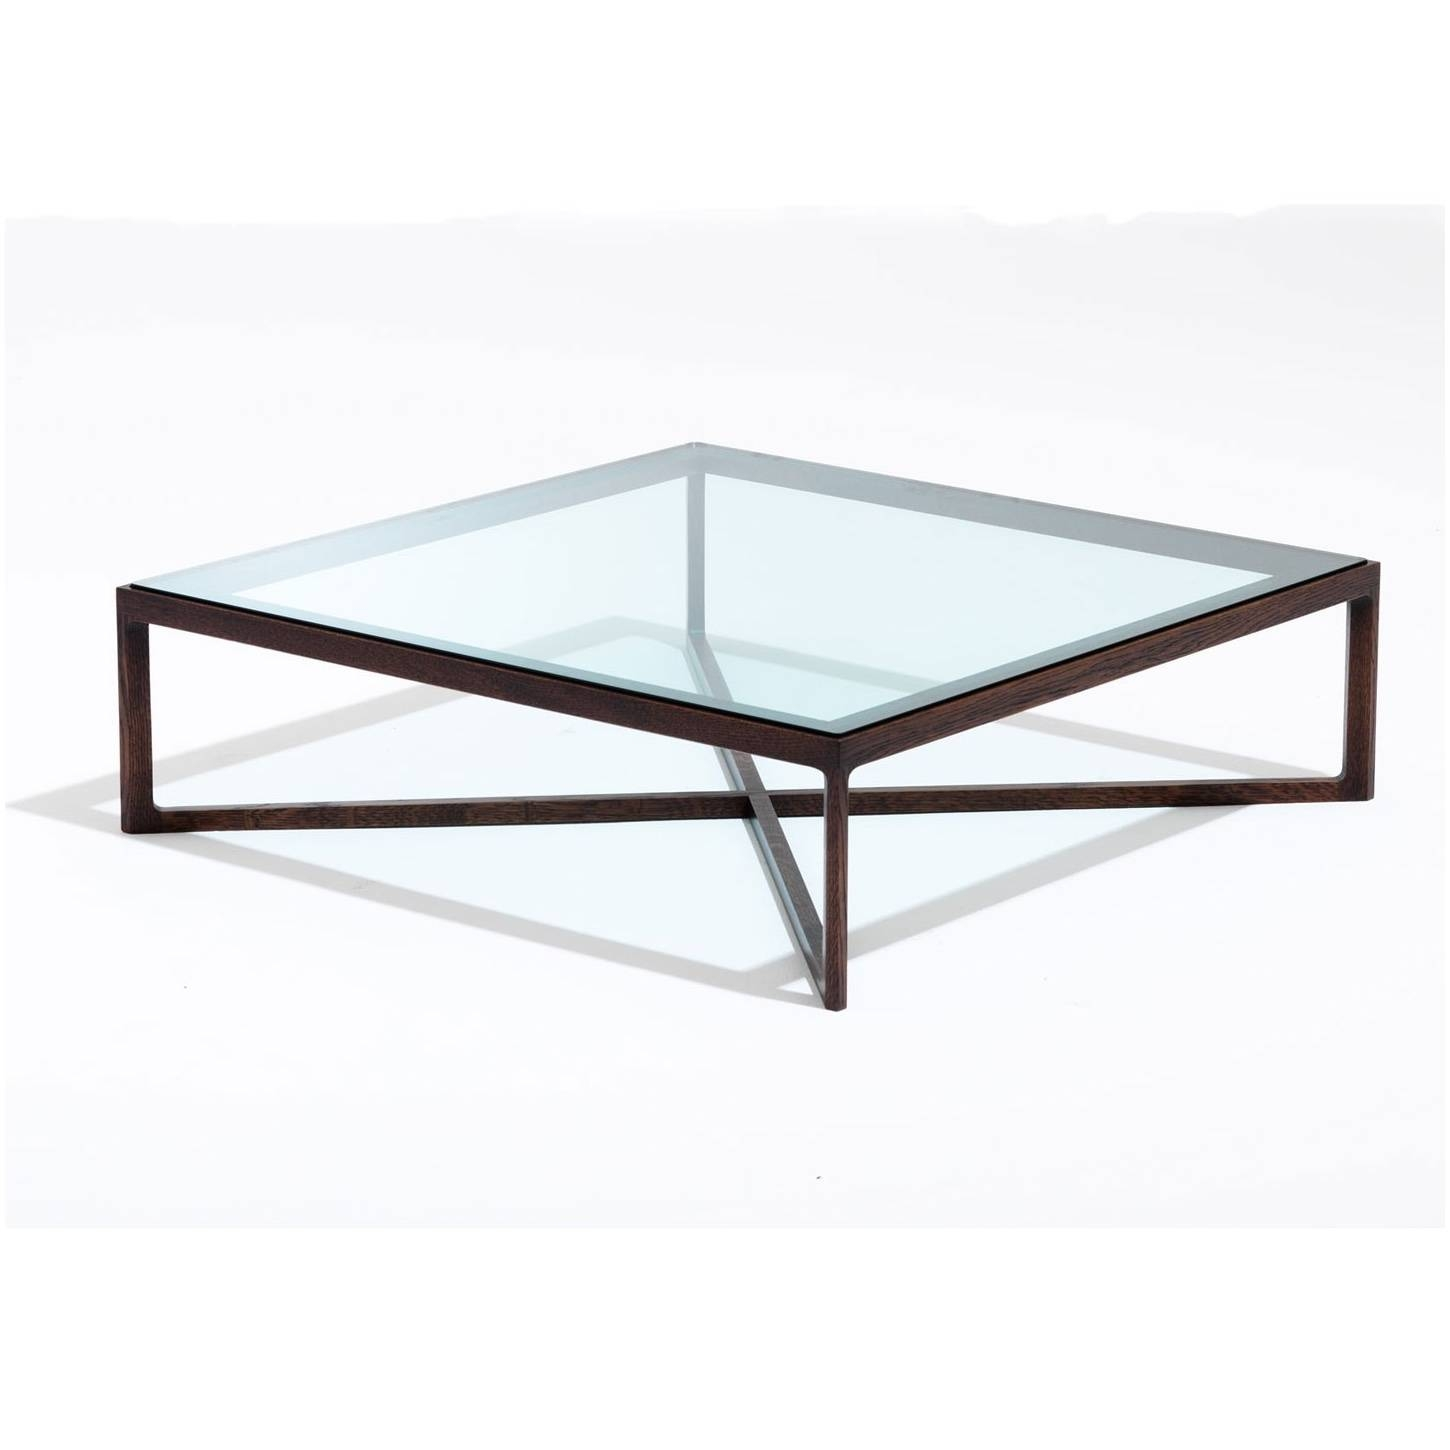 Table. Large Glass Coffee Table - Home Interior Design pertaining to Large Glass Coffee Tables (Image 15 of 15)